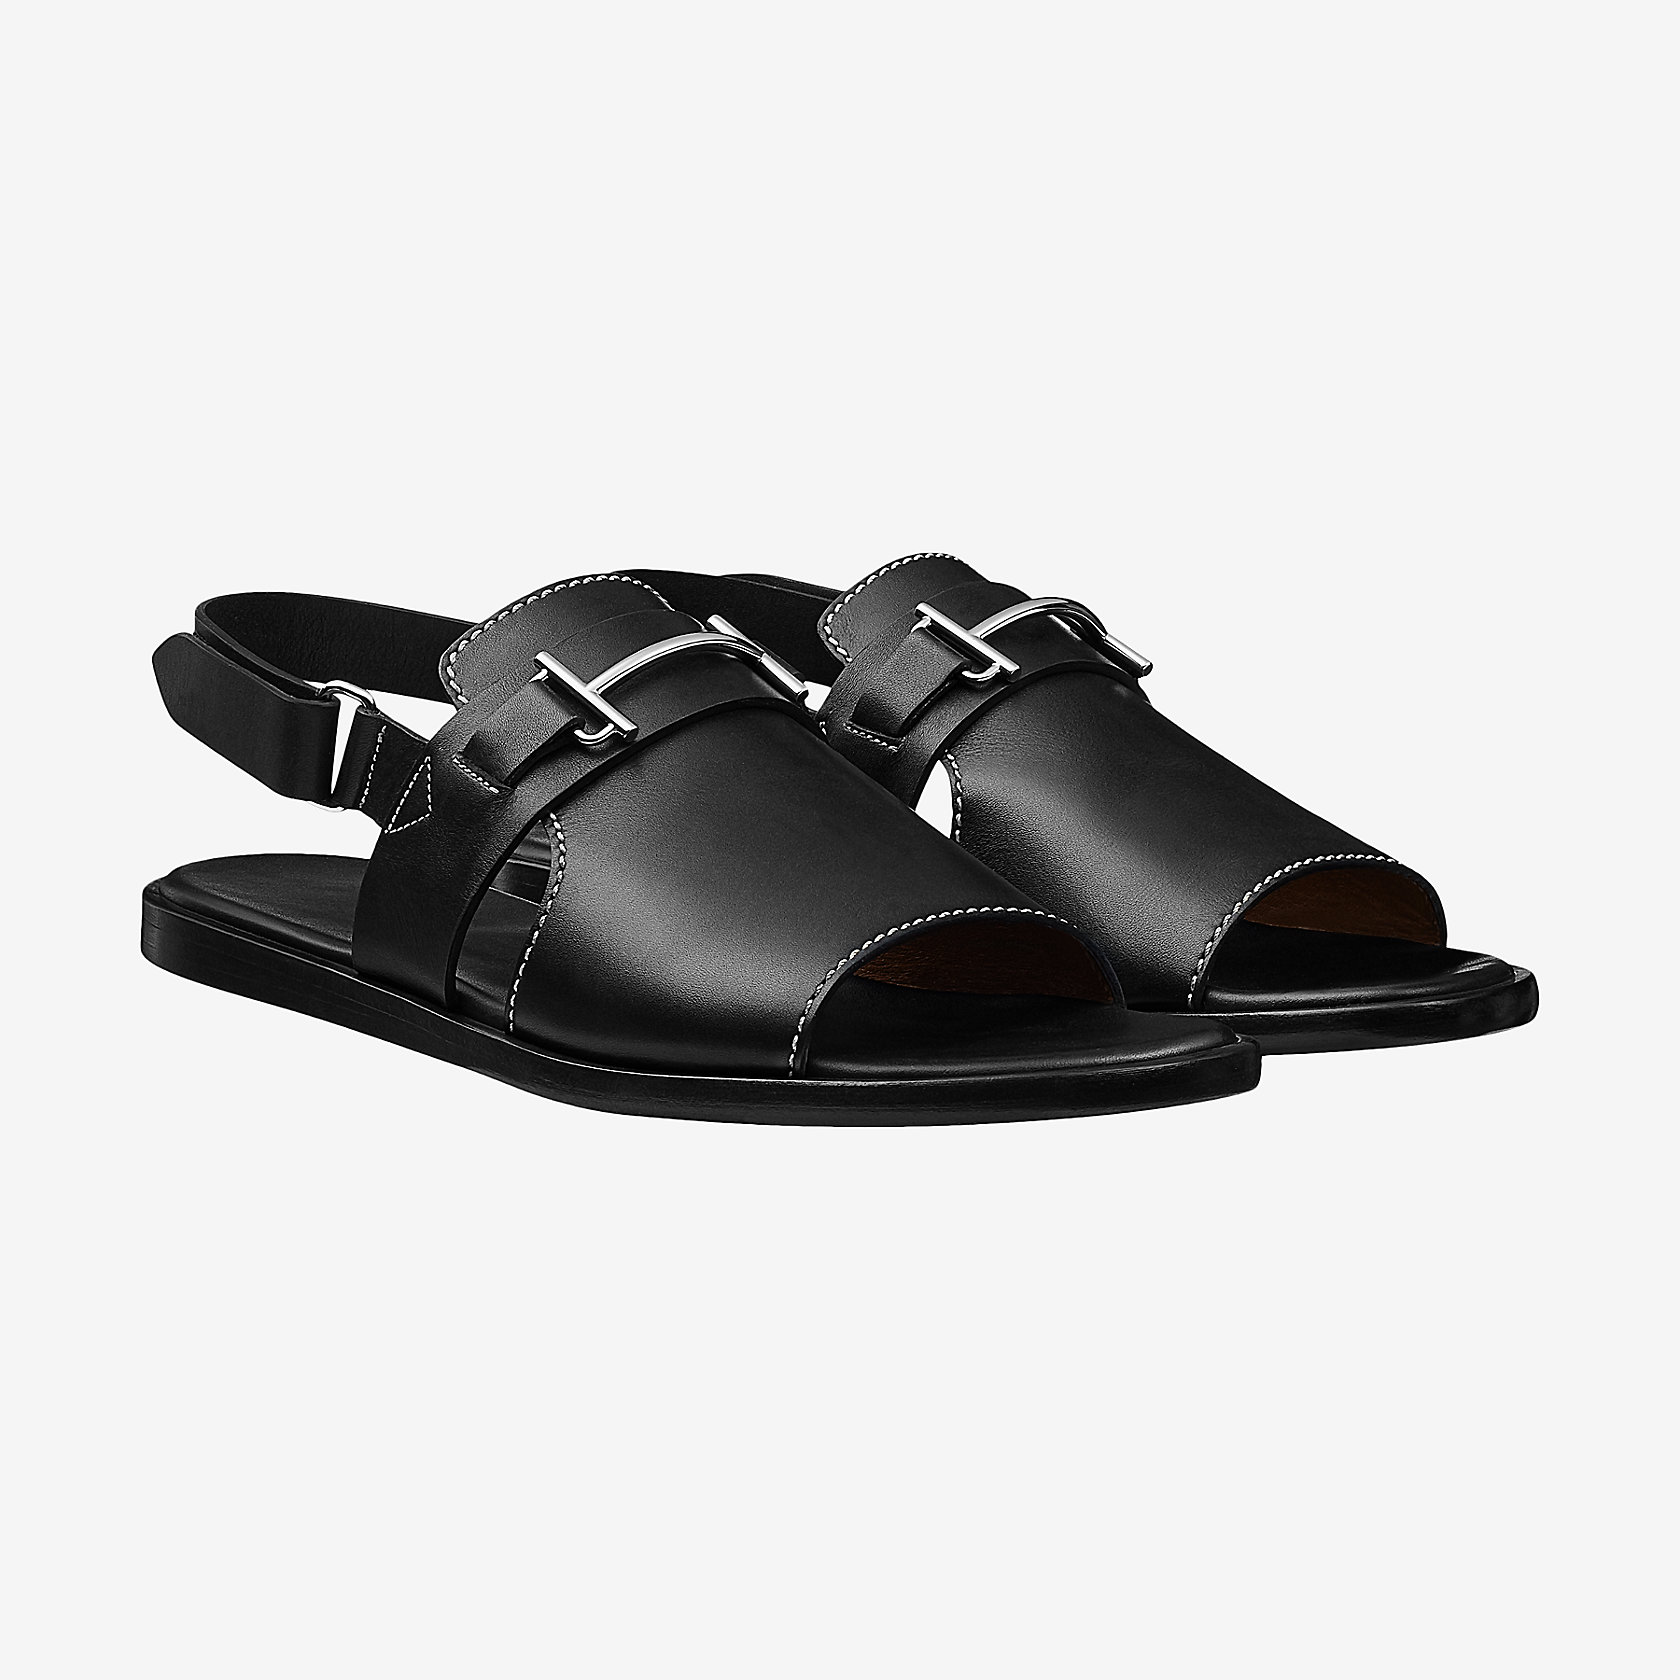 Find every shop in the world selling Mona Sandal at